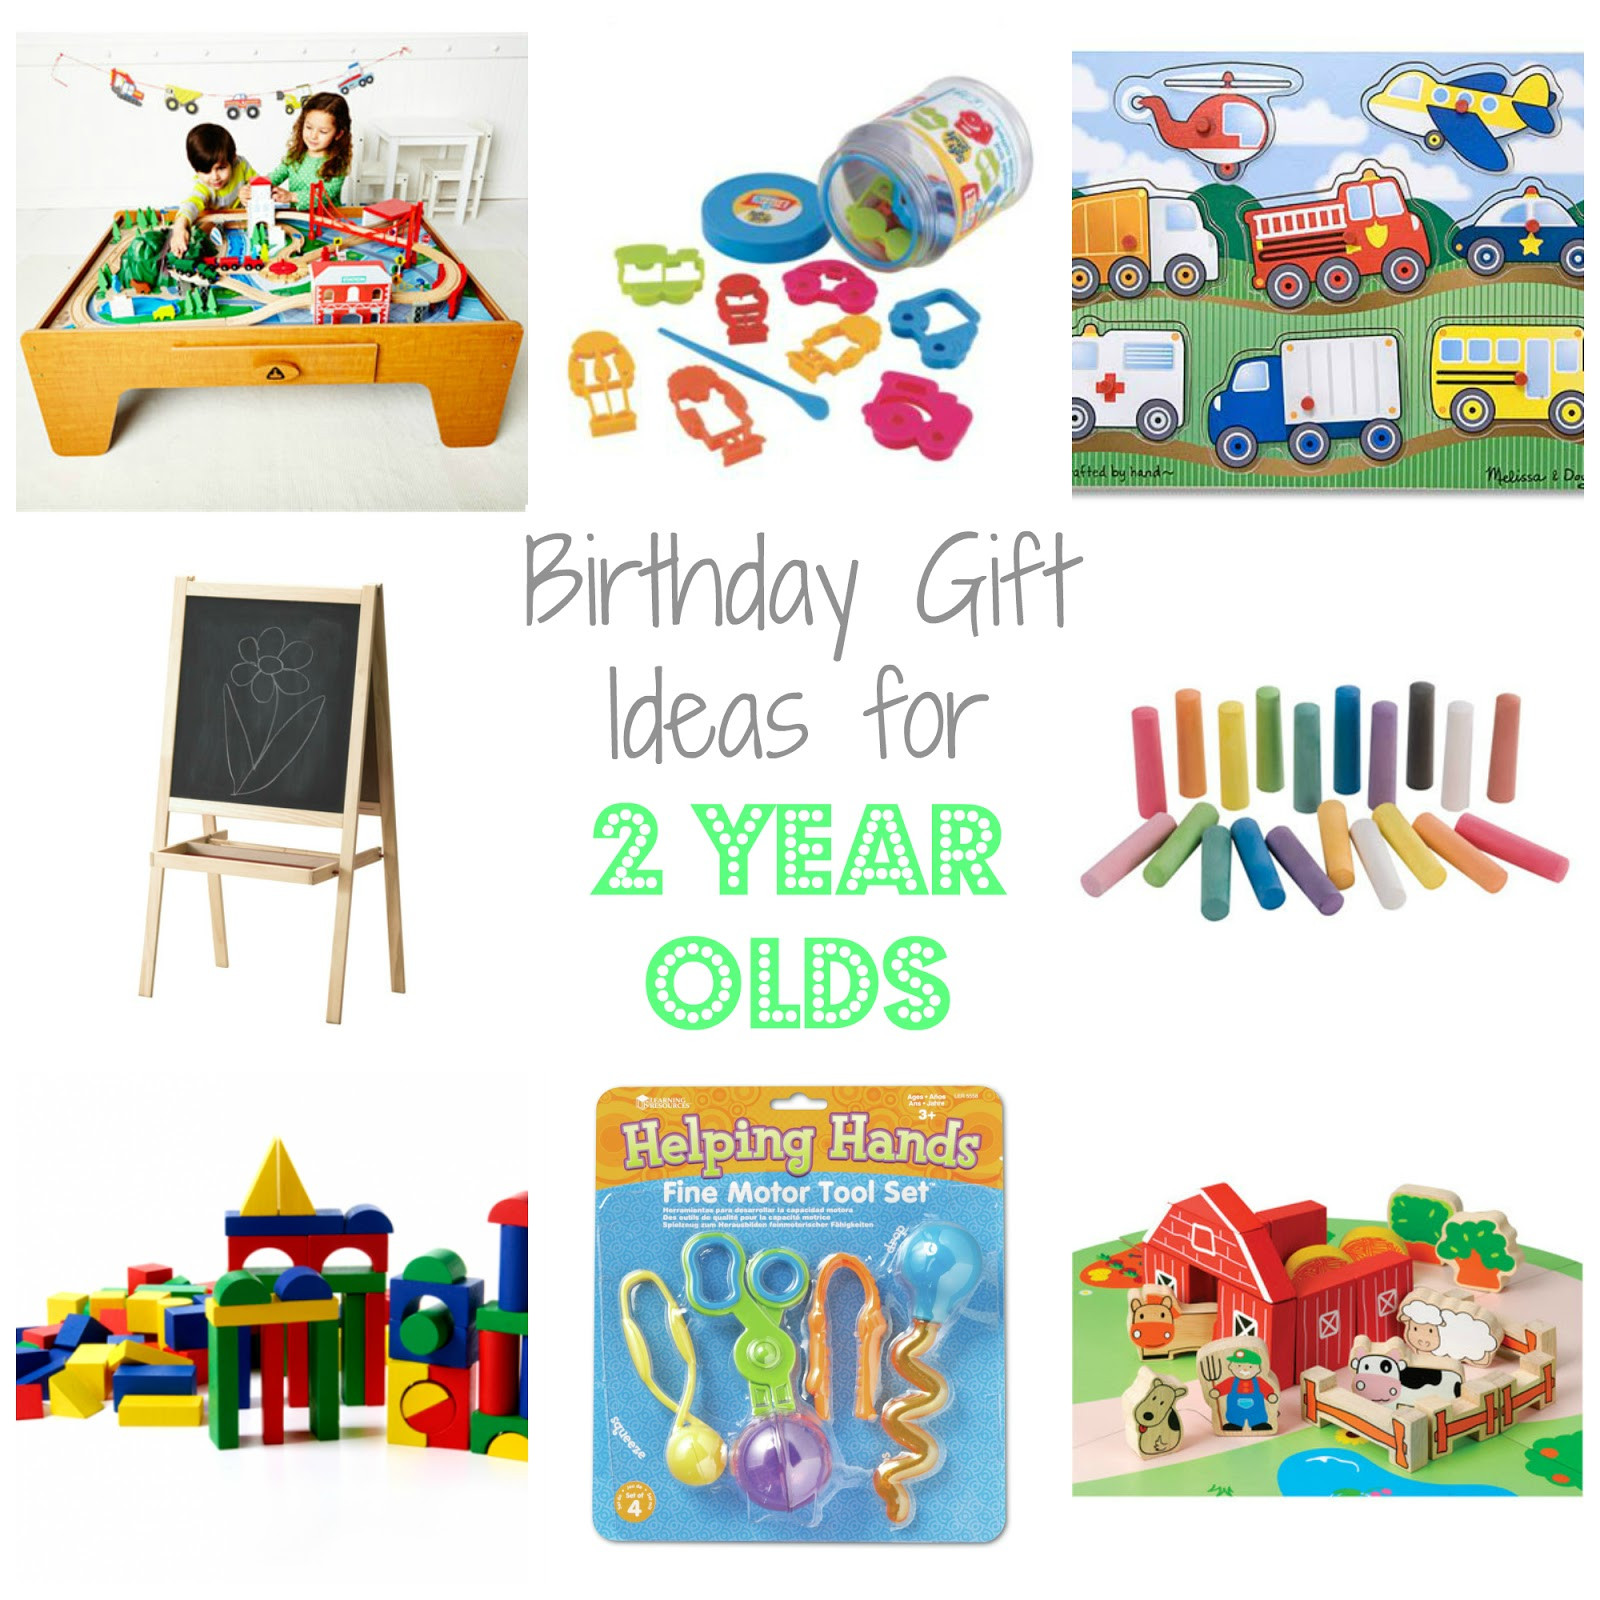 Two Year Old Birthday Gift Ideas  Birthday Gift Ideas for Two Year Olds